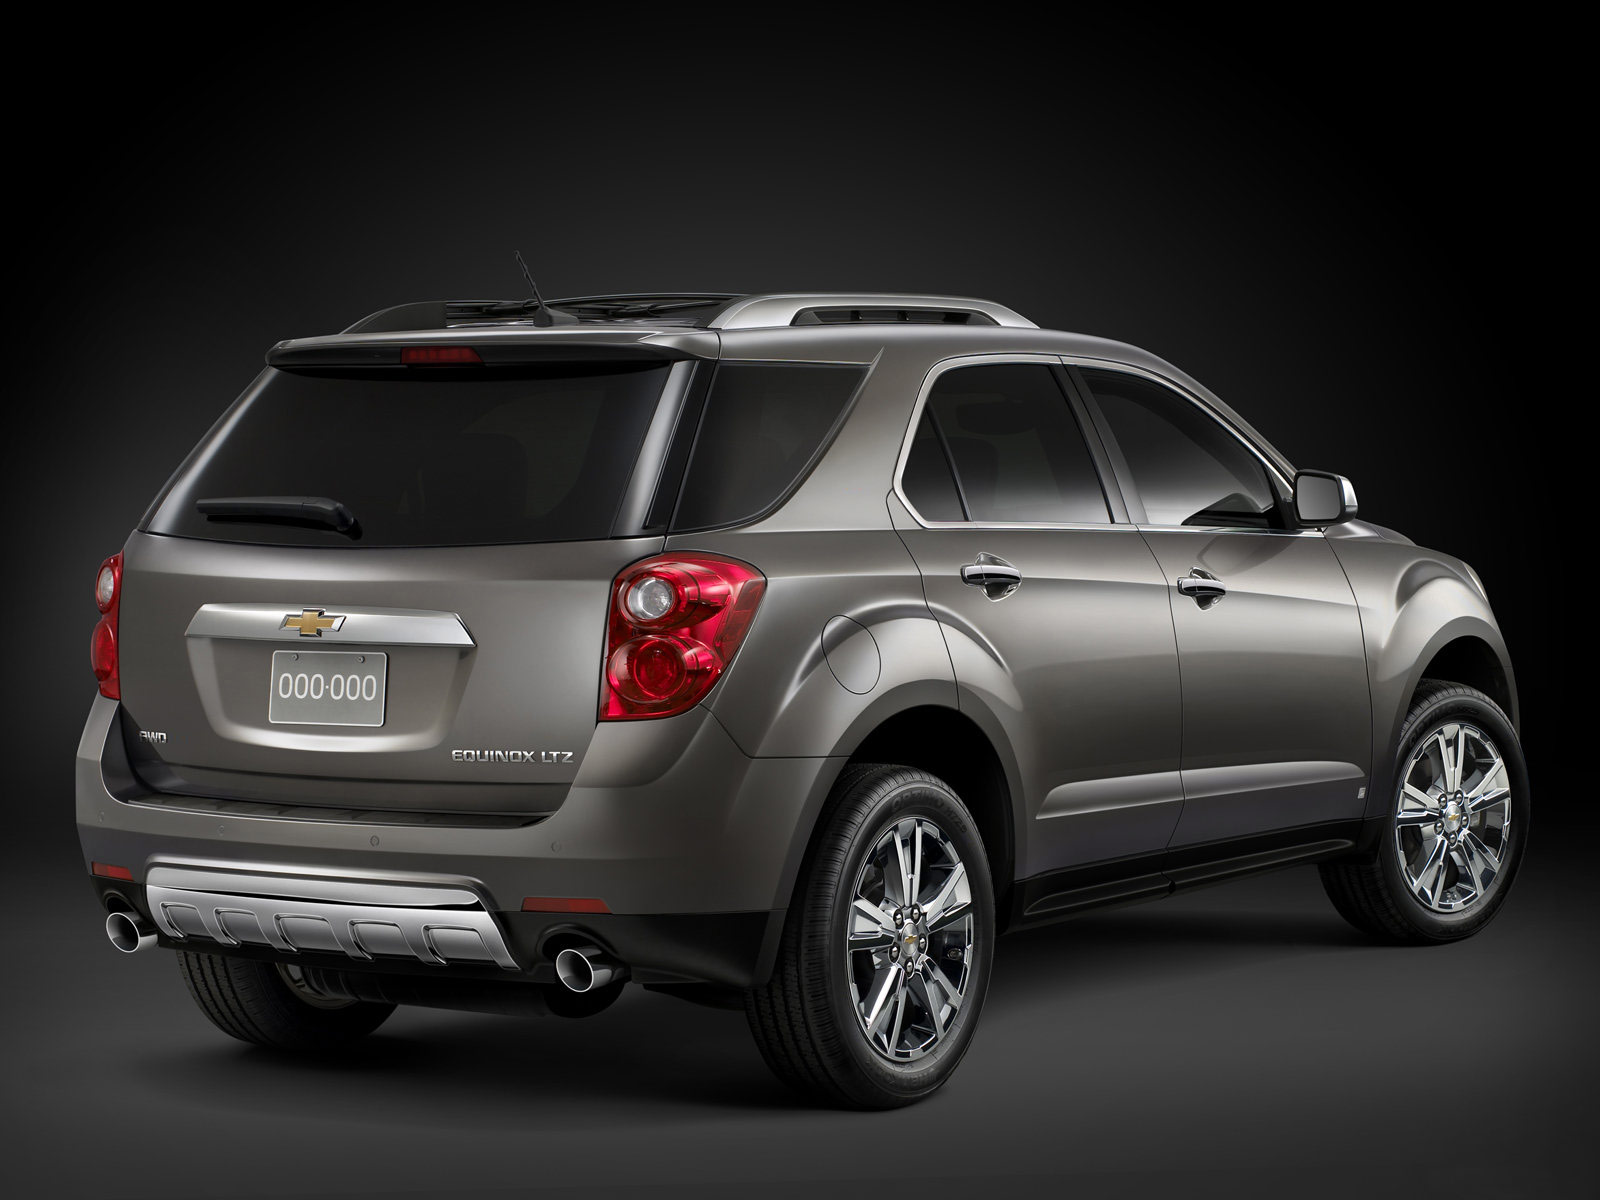 2011 Chevrolet Equinox - Review